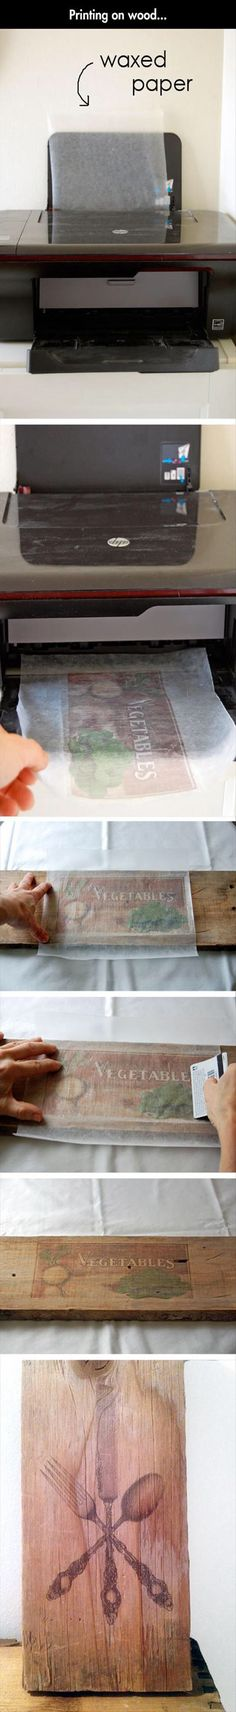 42 Craft Project Ideas That are Easy to Make and Sell - Big DIY IDeas Printed image on wood using waxed paper art diy wood projects projects diy projects for beginners projects ideas projects plans Wood Crafts, Fun Crafts, Diy And Crafts, Arts And Crafts, Crafts To Make And Sell Ideas, Decor Crafts, Wax Paper Crafts, Easy Gifts To Make, Diy Projects To Try